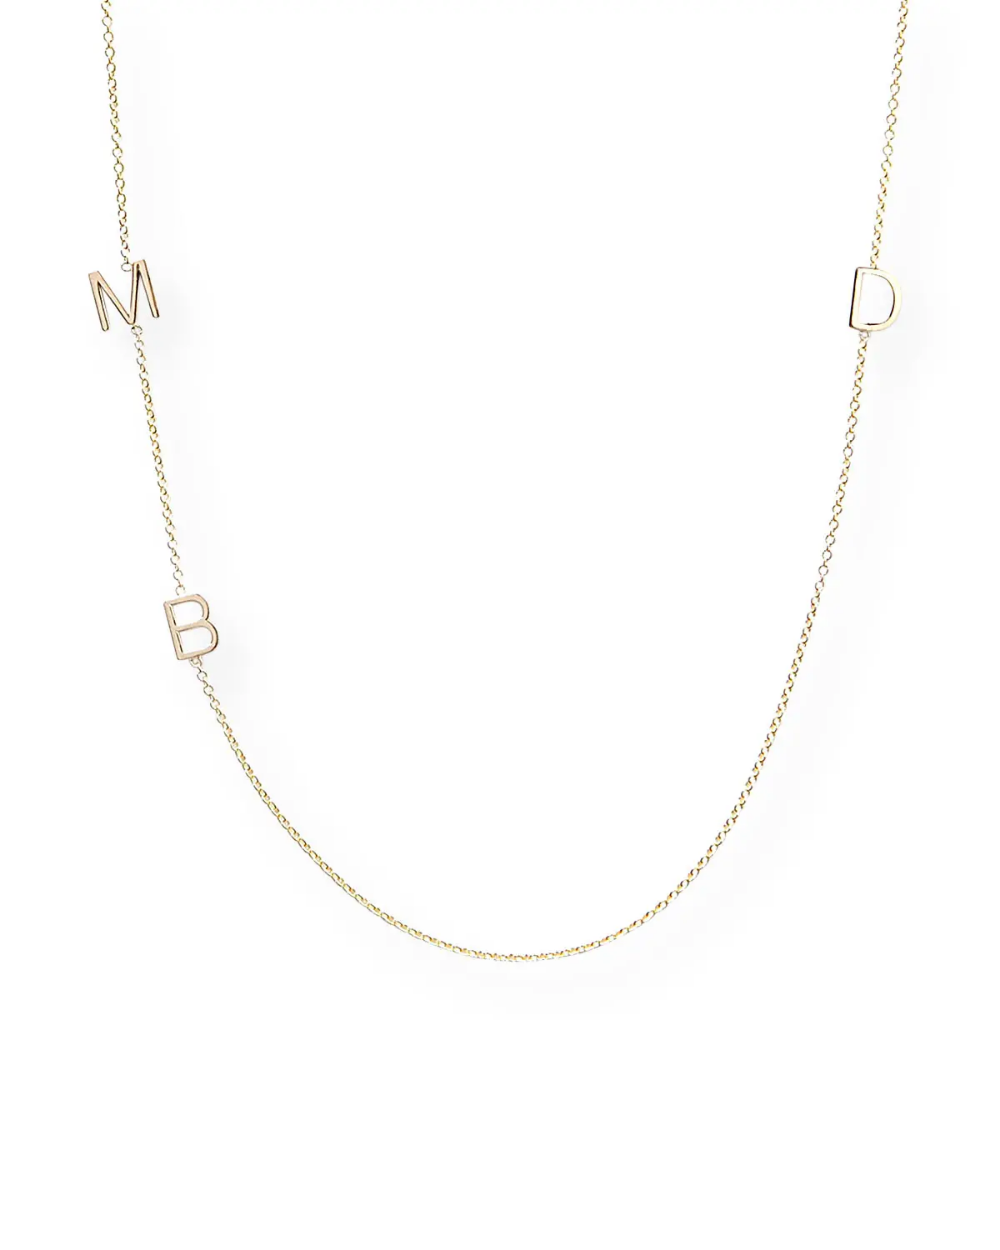 Maya Brenner Designs Mini 3Letter Personalized Necklace